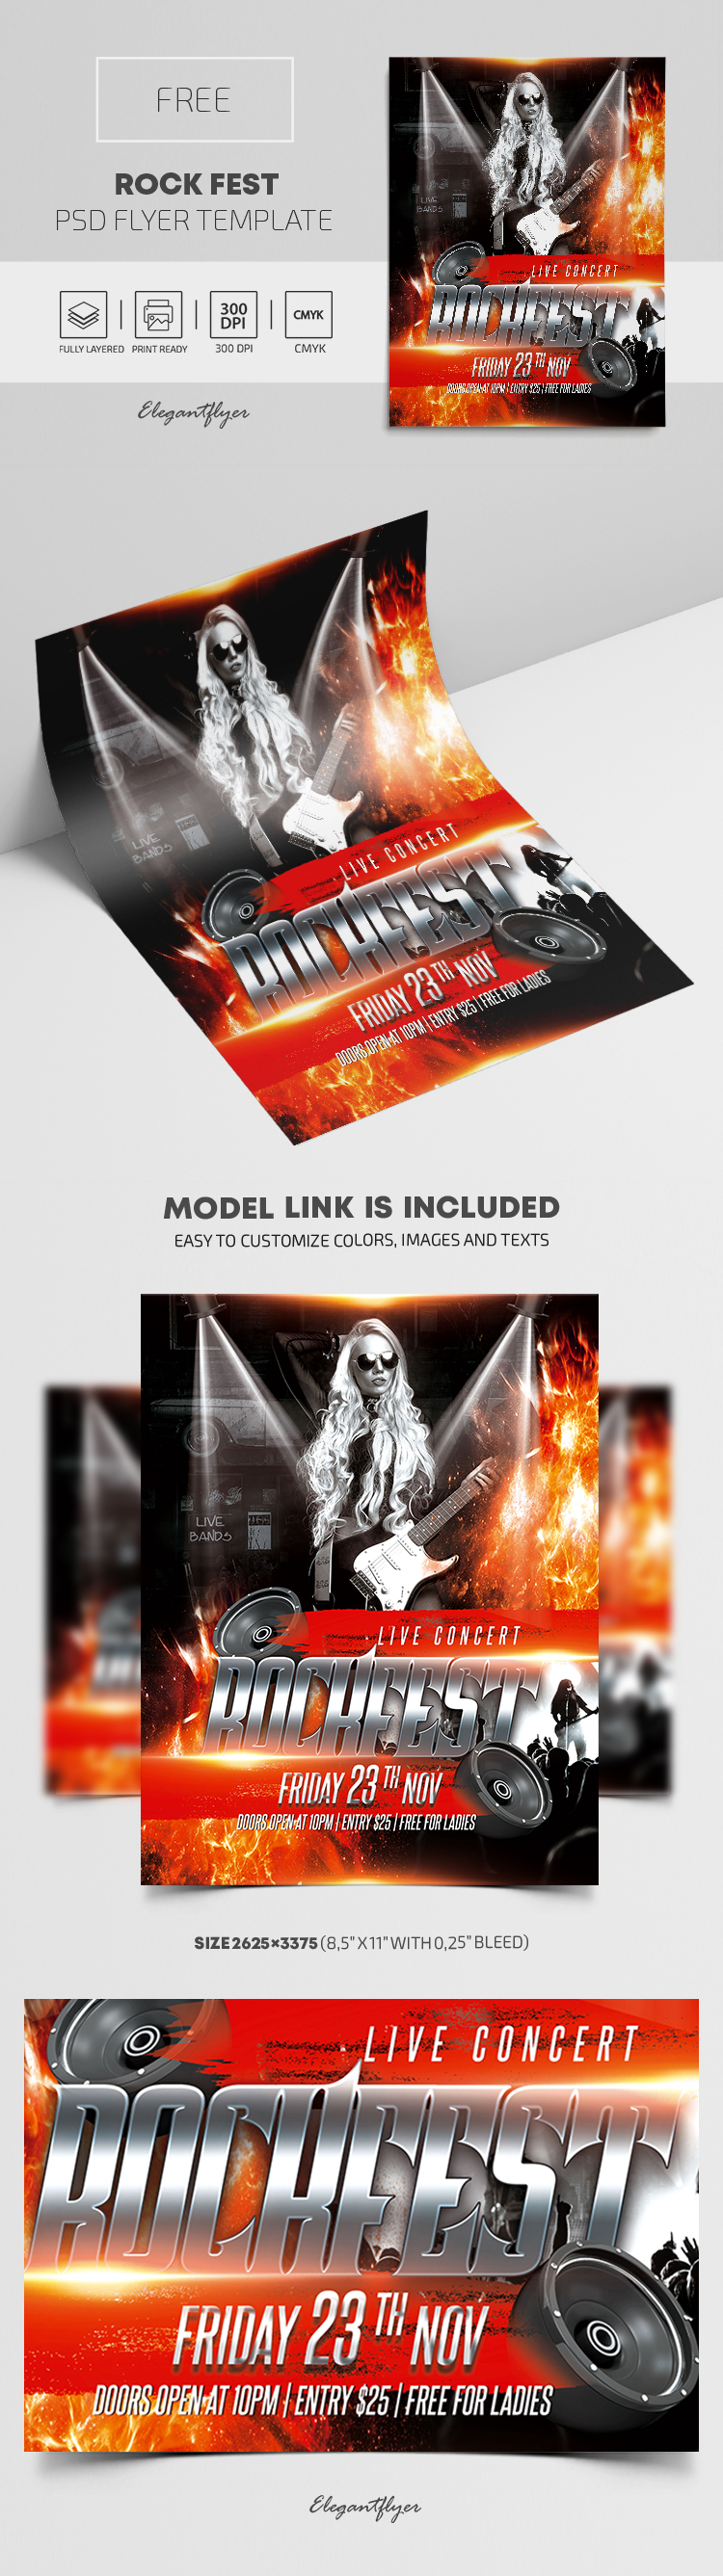 Rock Fest – Free PSD Flyer Template